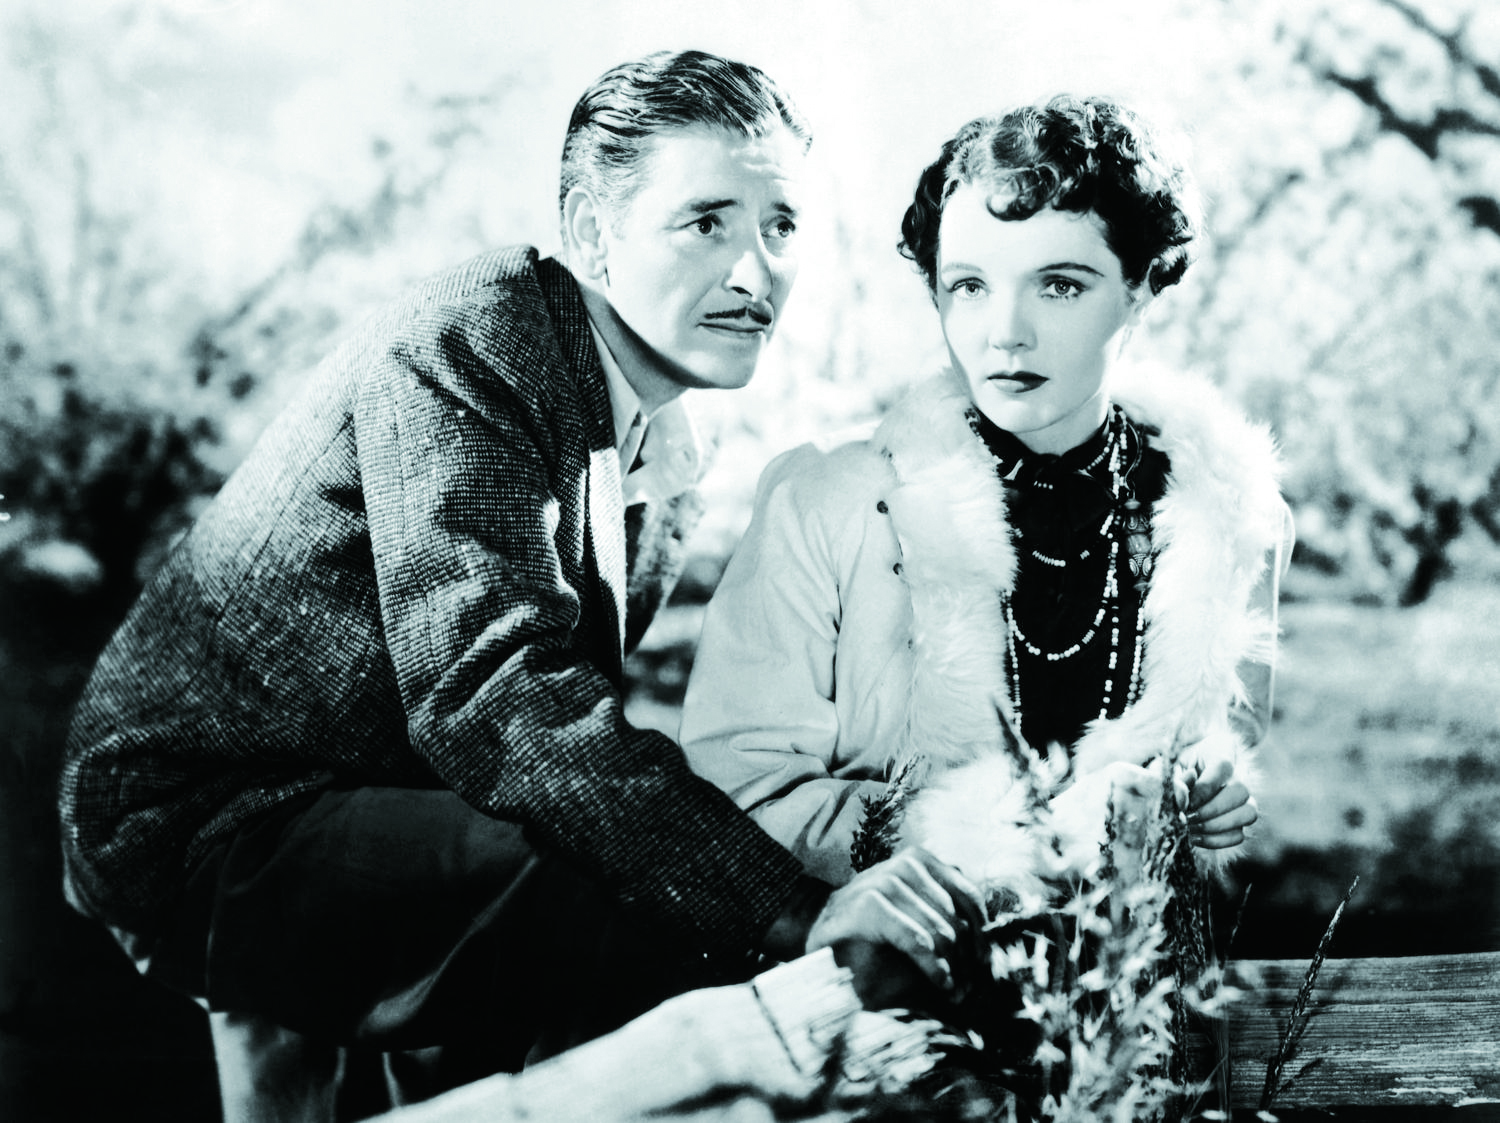 A scene from Lost Horizon featuring actors Jane Wyatt  and Ronald Colman.